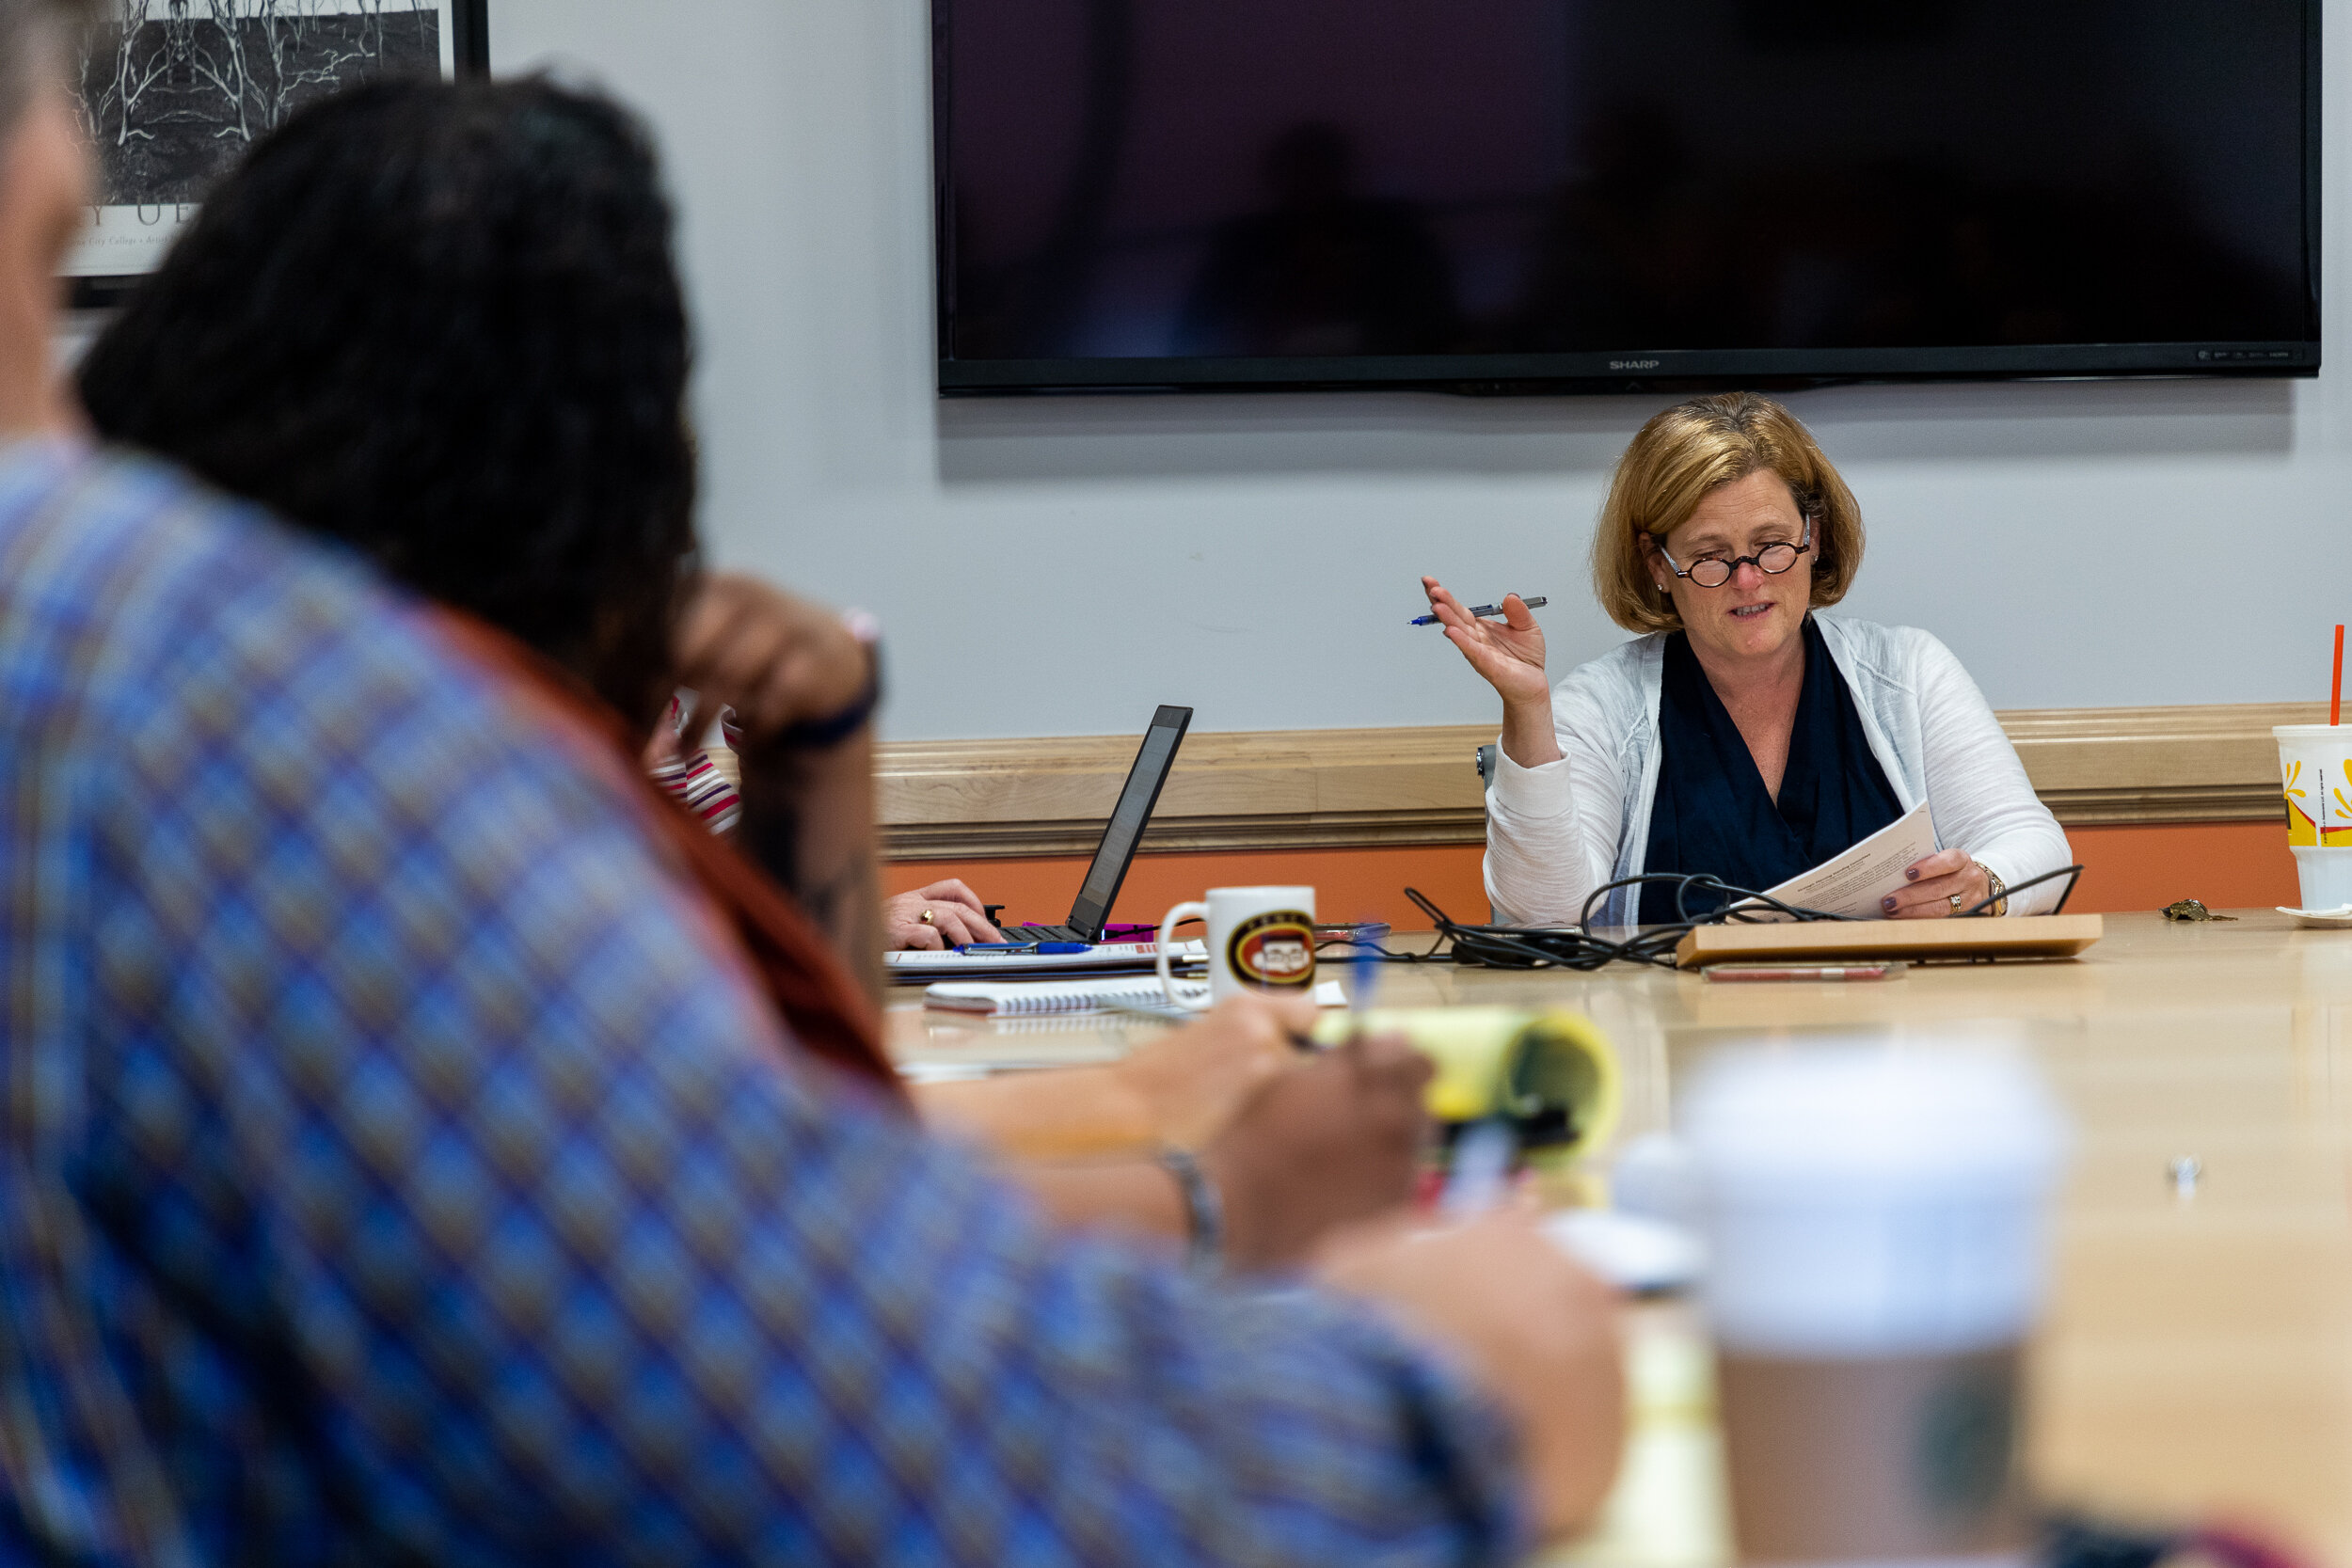 Nicholas Slobin/ Courier Pasadena City College President Erika Endrijonas leads the College Council meeting at PCC on Friday, September 19, 2019.